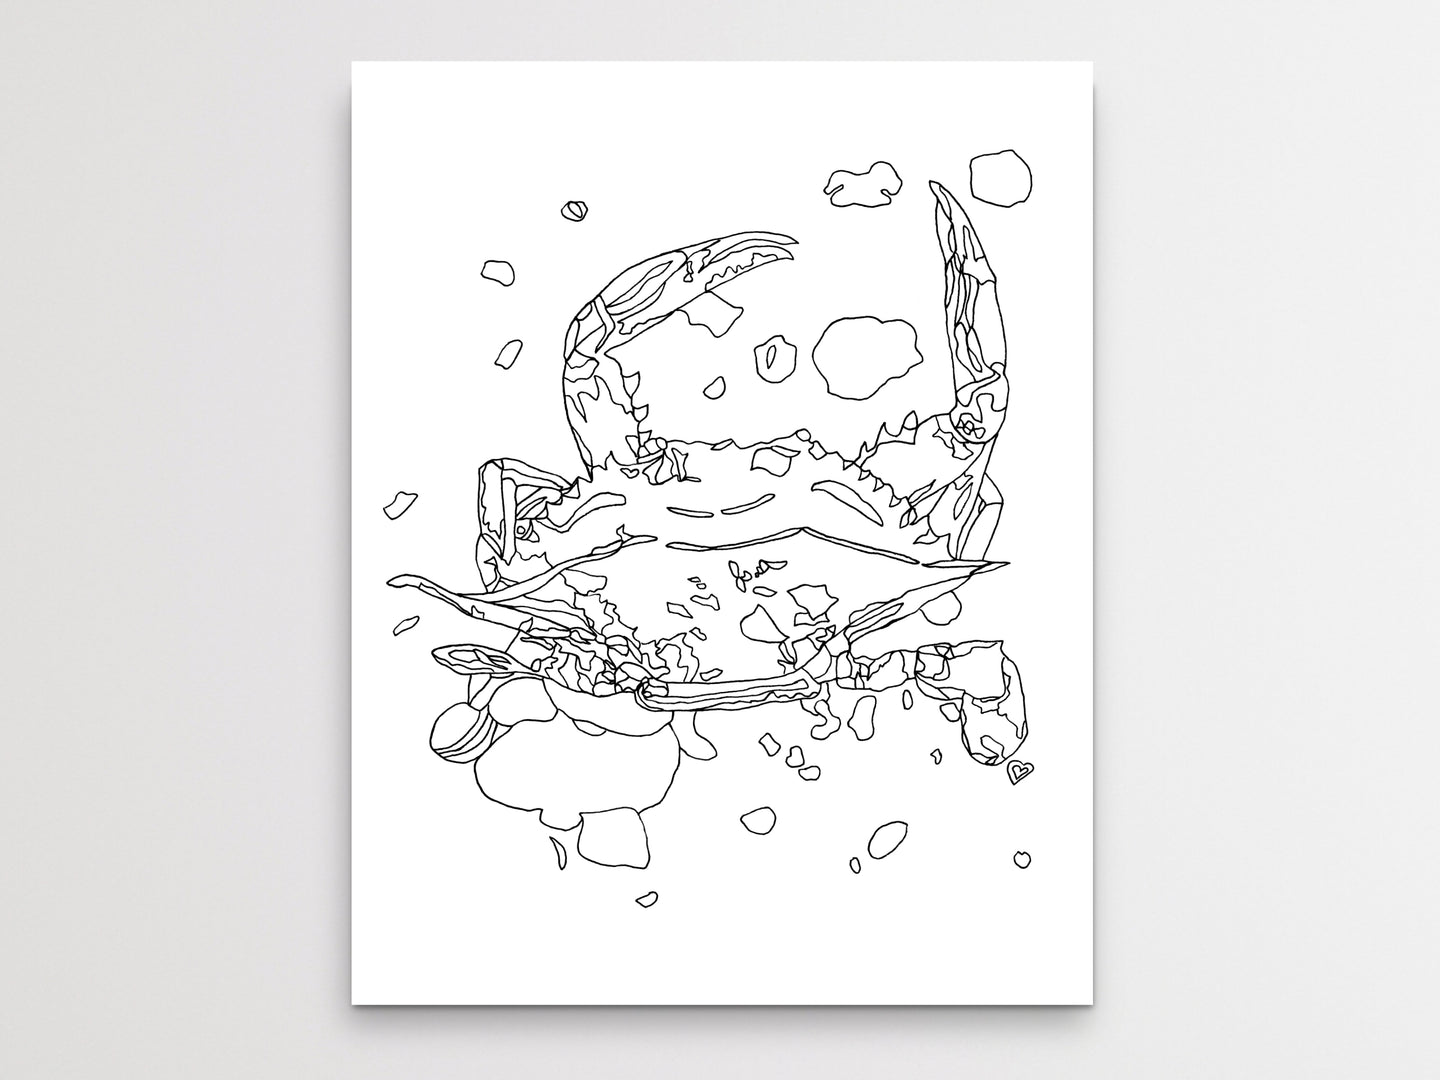 Maryland State Blue Crab. Maryland State Symbol Crab Line Art Print 1